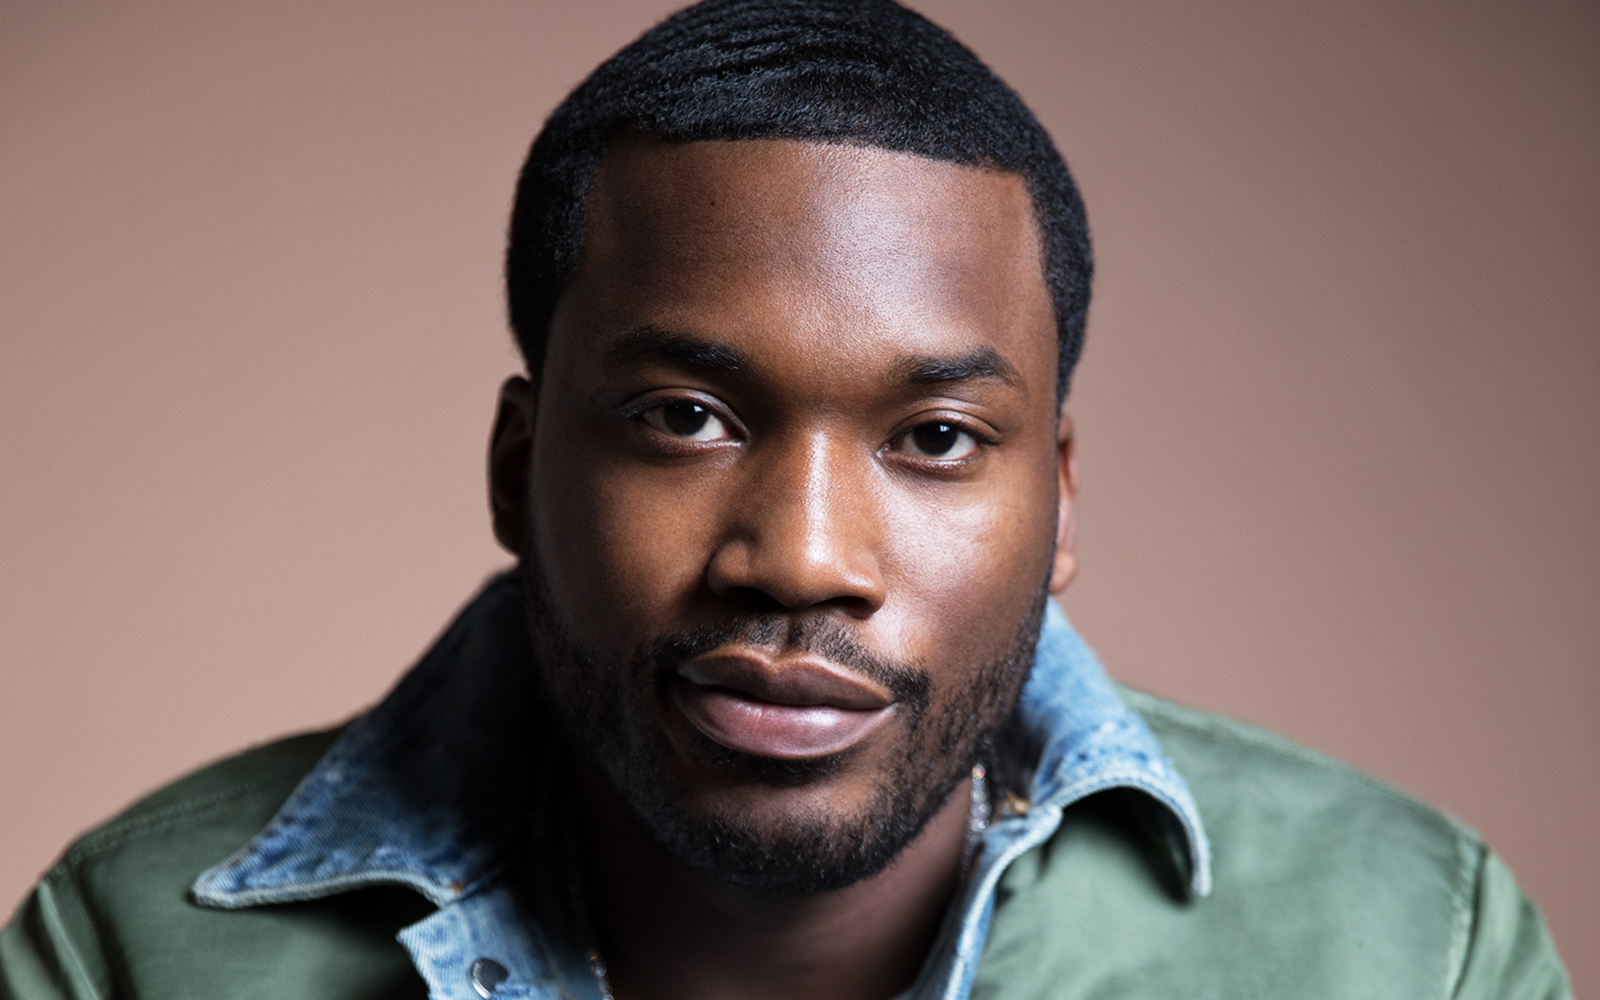 VOGUE COVERS MEEK MILL'S JOURNEY TO HELPING THE CRIMINAL JUSTICE SYSTEM